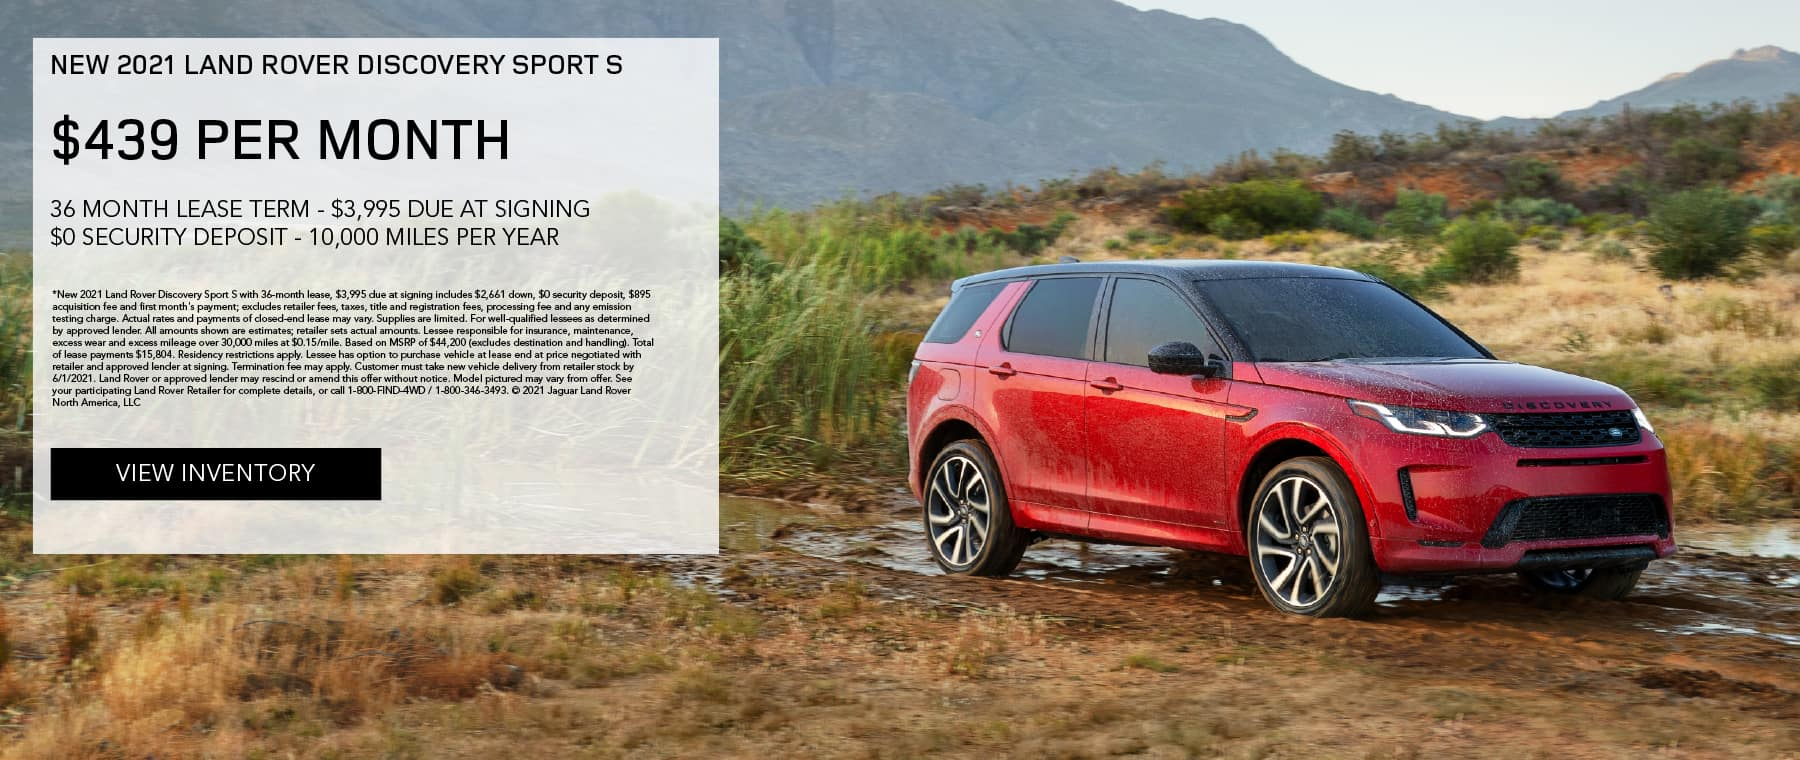 NEW 2021 LAND ROVER DISCOVERY SPORT S. $439 PER MONTH. 36 MONTH LEASE TERM. $3,995 CASH DUE AT SIGNING. $0 SECURITY DEPOSIT. 10,000 MILES PER YEAR. EXCLUDES RETAILER FEES, TAXES, TITLE AND REGISTRATION FEES, PROCESSING FEE AND ANY EMISSION TESTING CHARGE. ENDS 6/1/2021. VIEW INVENTORY. RED LAND ROVER DISCOVERY SPORT PARKED ON DIRT ROAD.